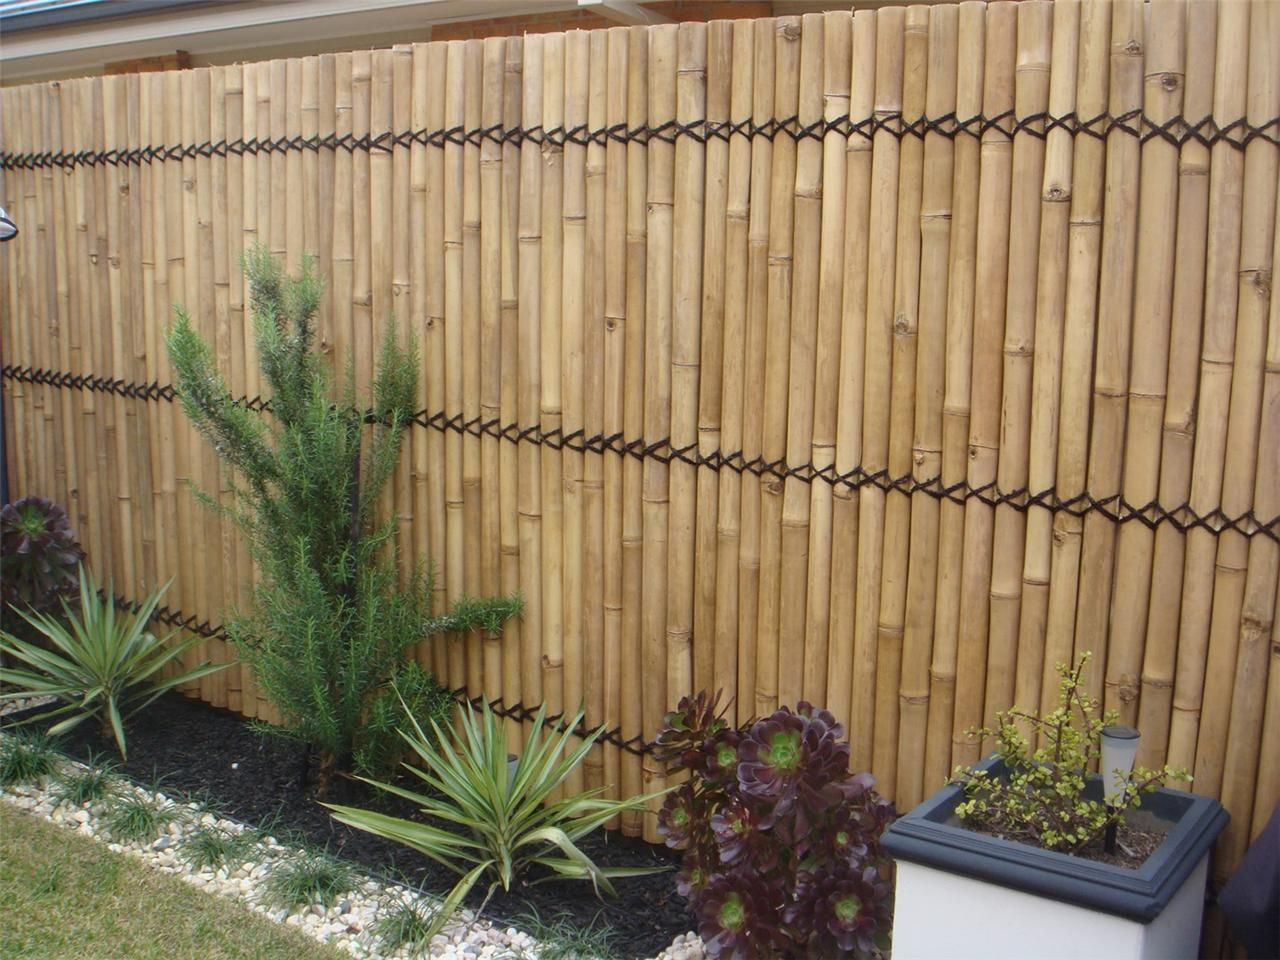 bamboo fence fencing bamboo screen 2 4m x 1m double